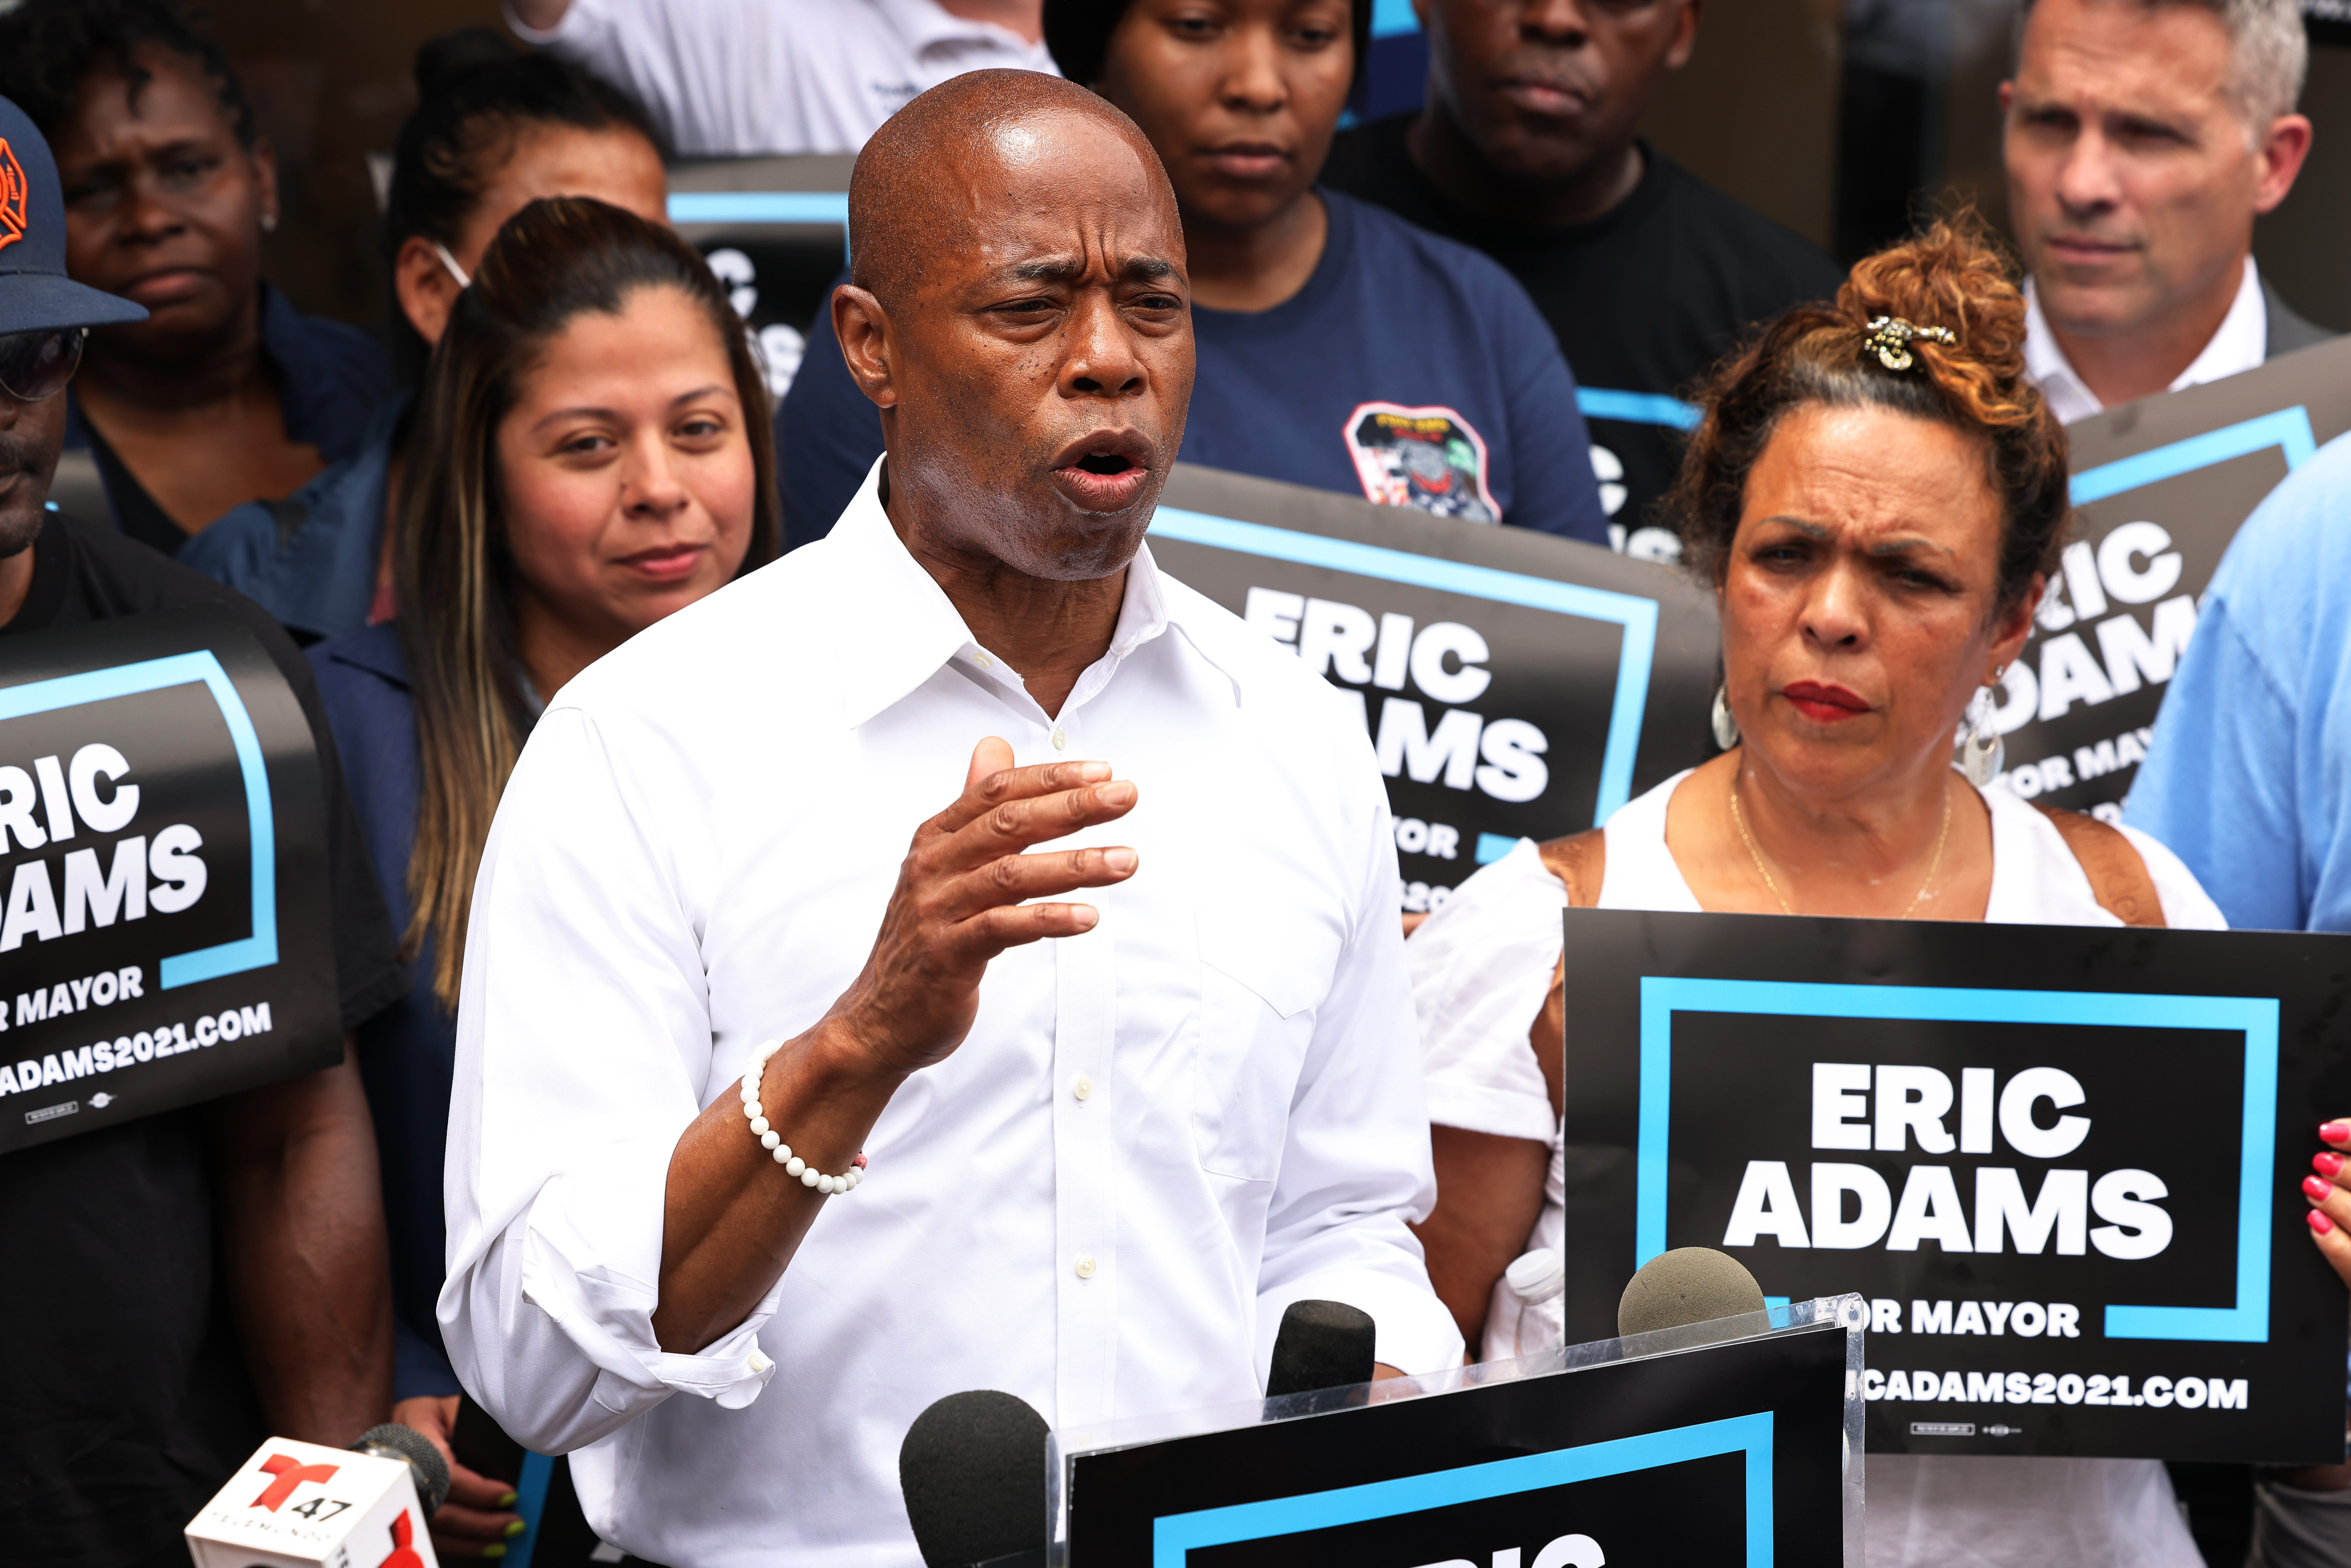 New York City mayoral candidate Eric Adams speaks during a Get Out the Vote rally on June 21, 2021.